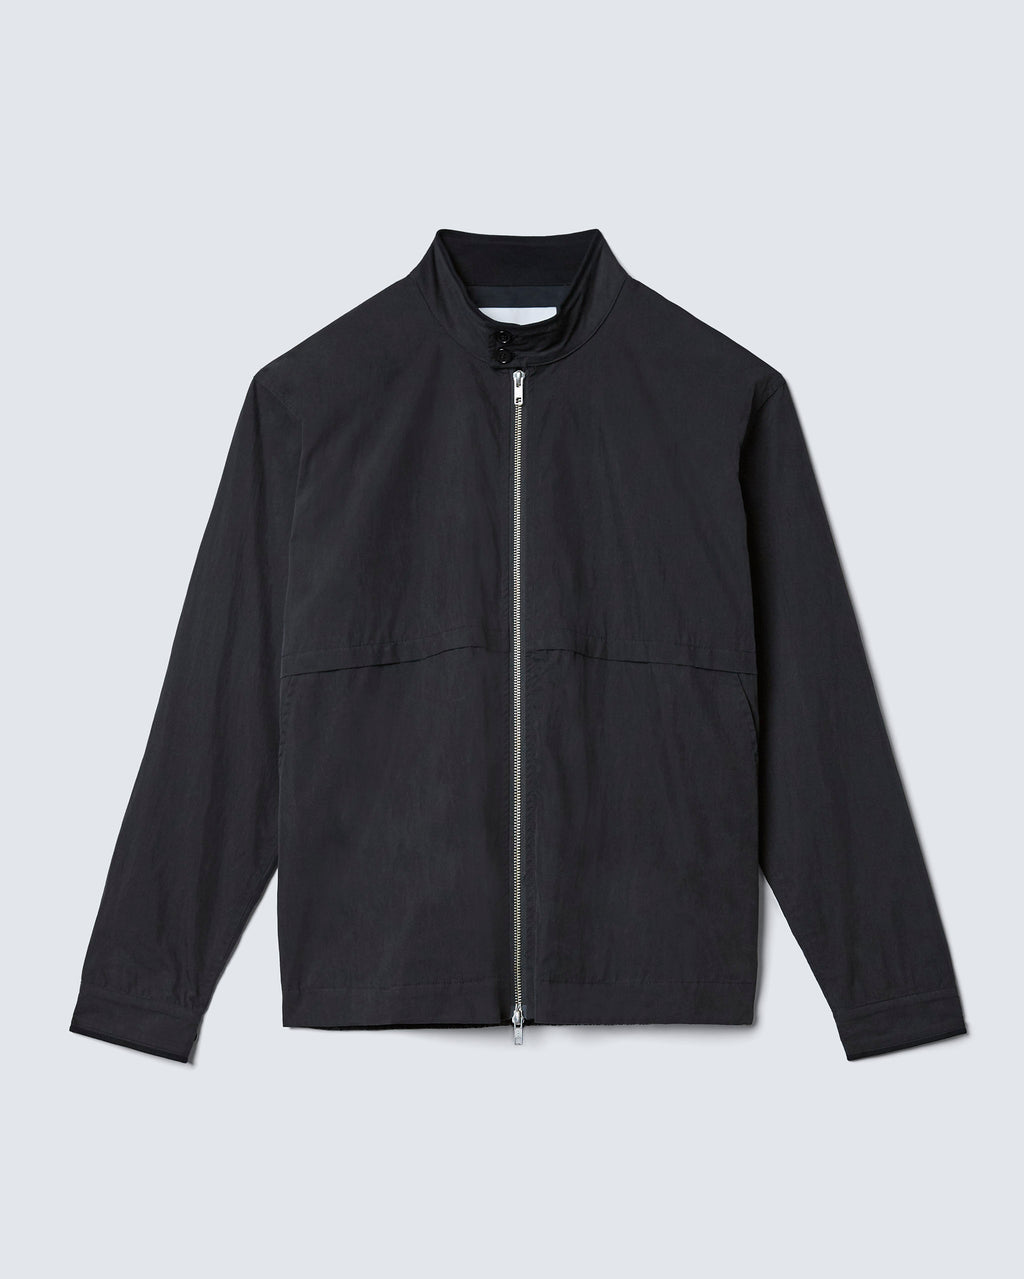 The Palmetto Jacket in Washed Black